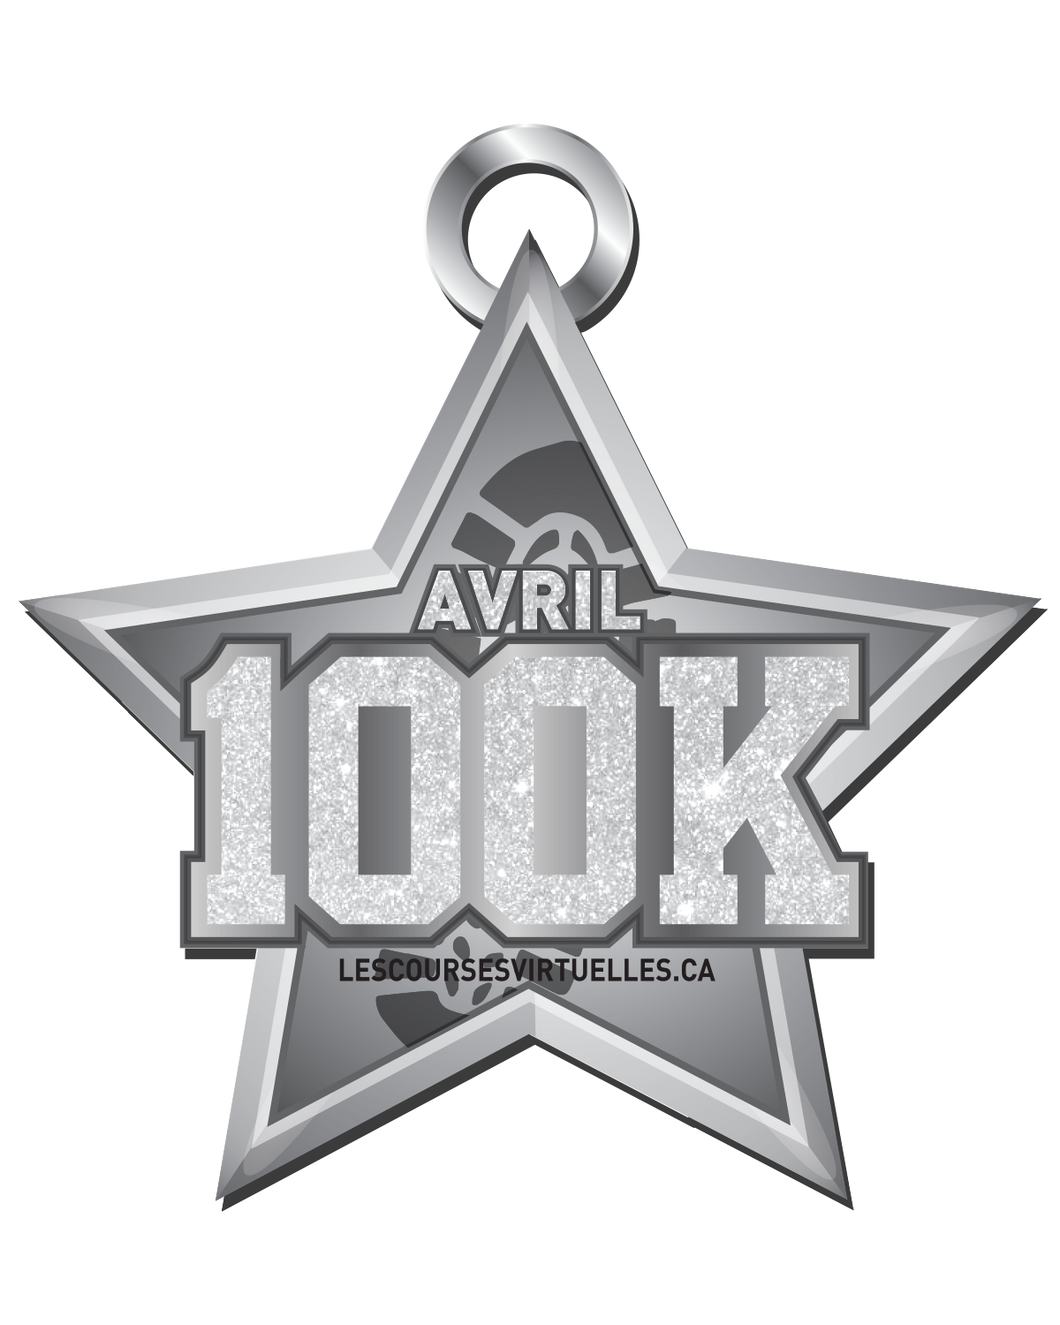 Défi 100K On bouge en avril !